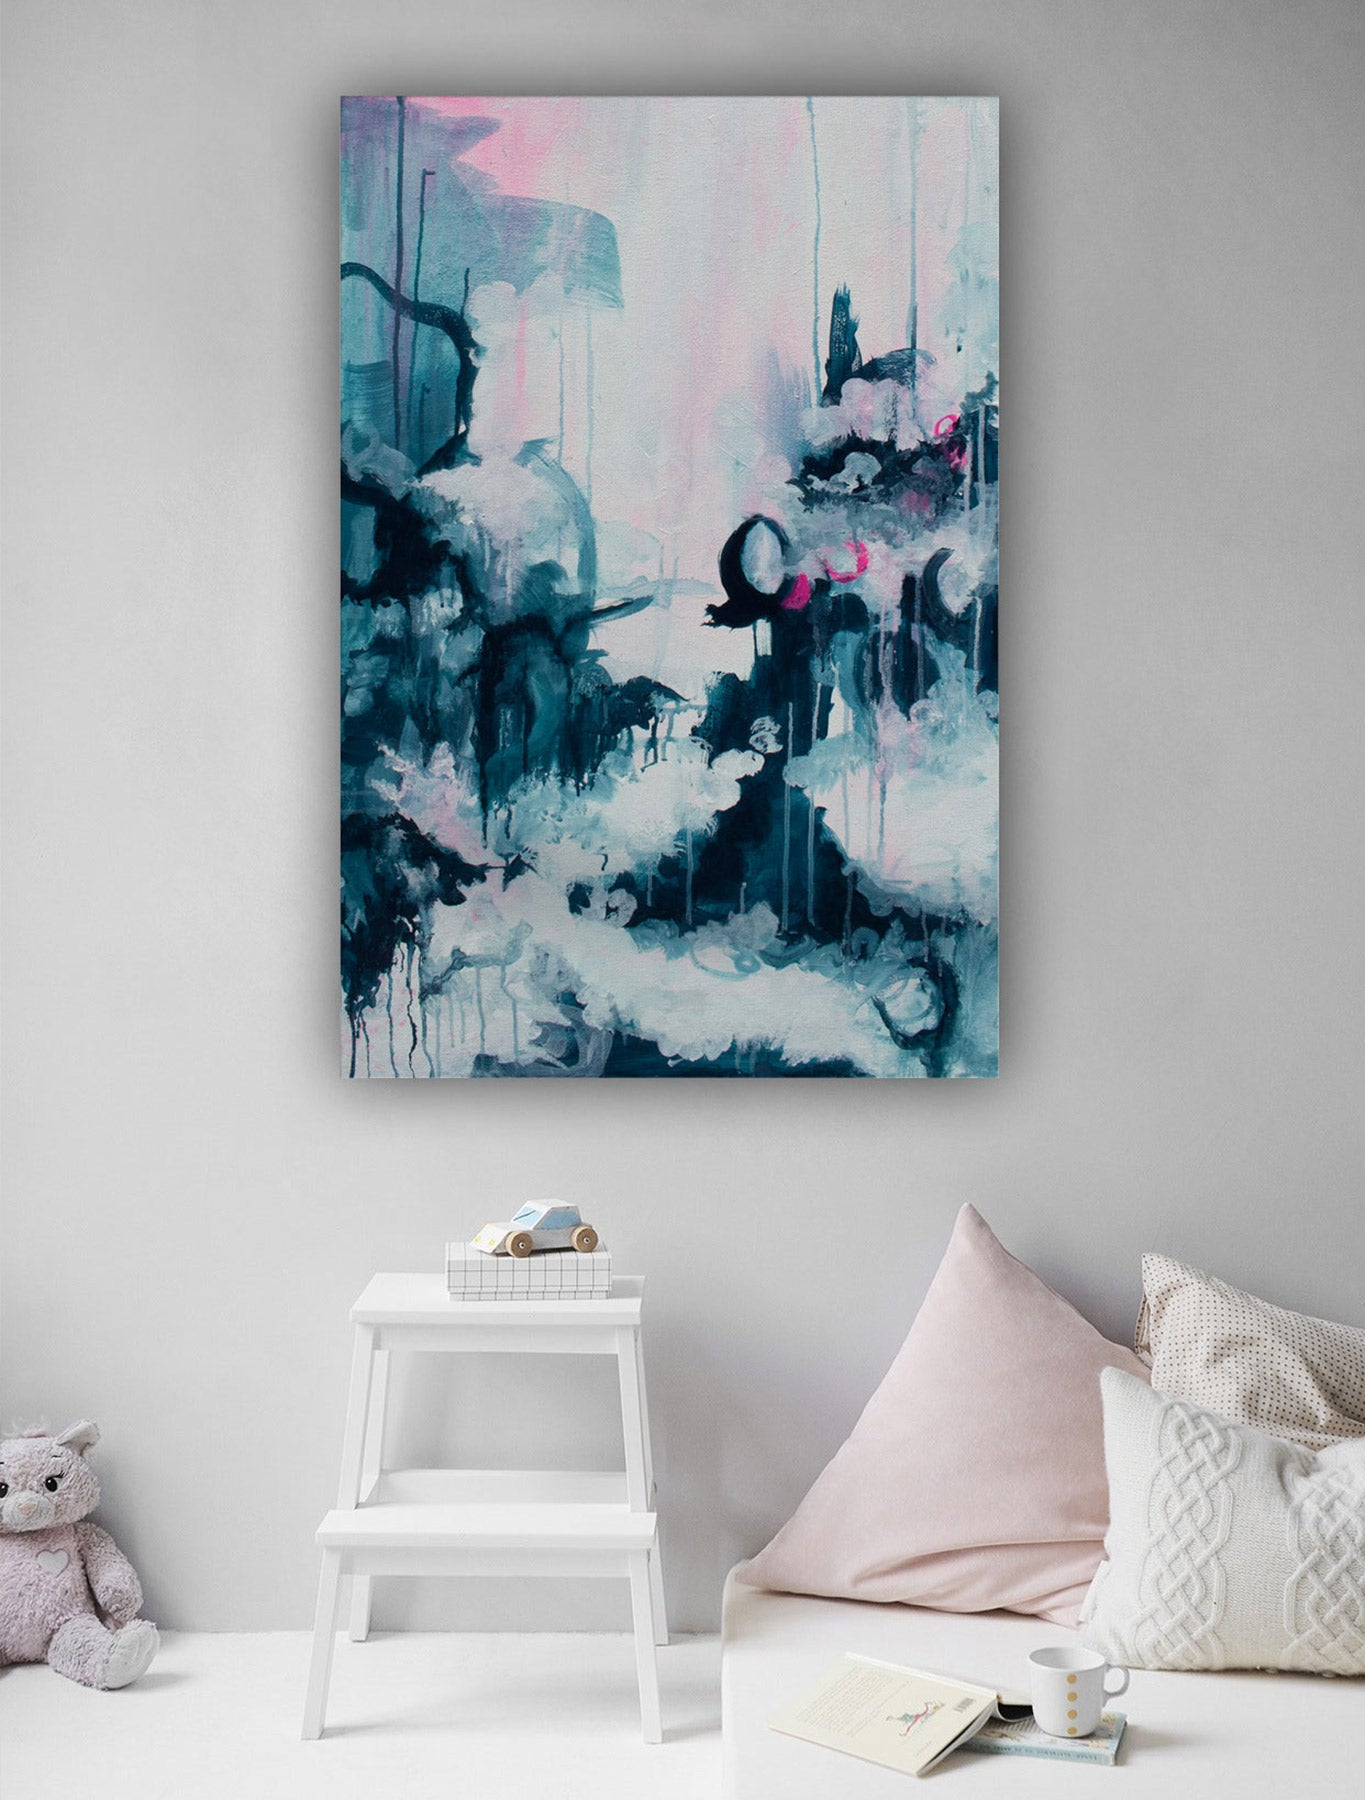 Magic Window Abstract Painting on wall - by Paige Ring